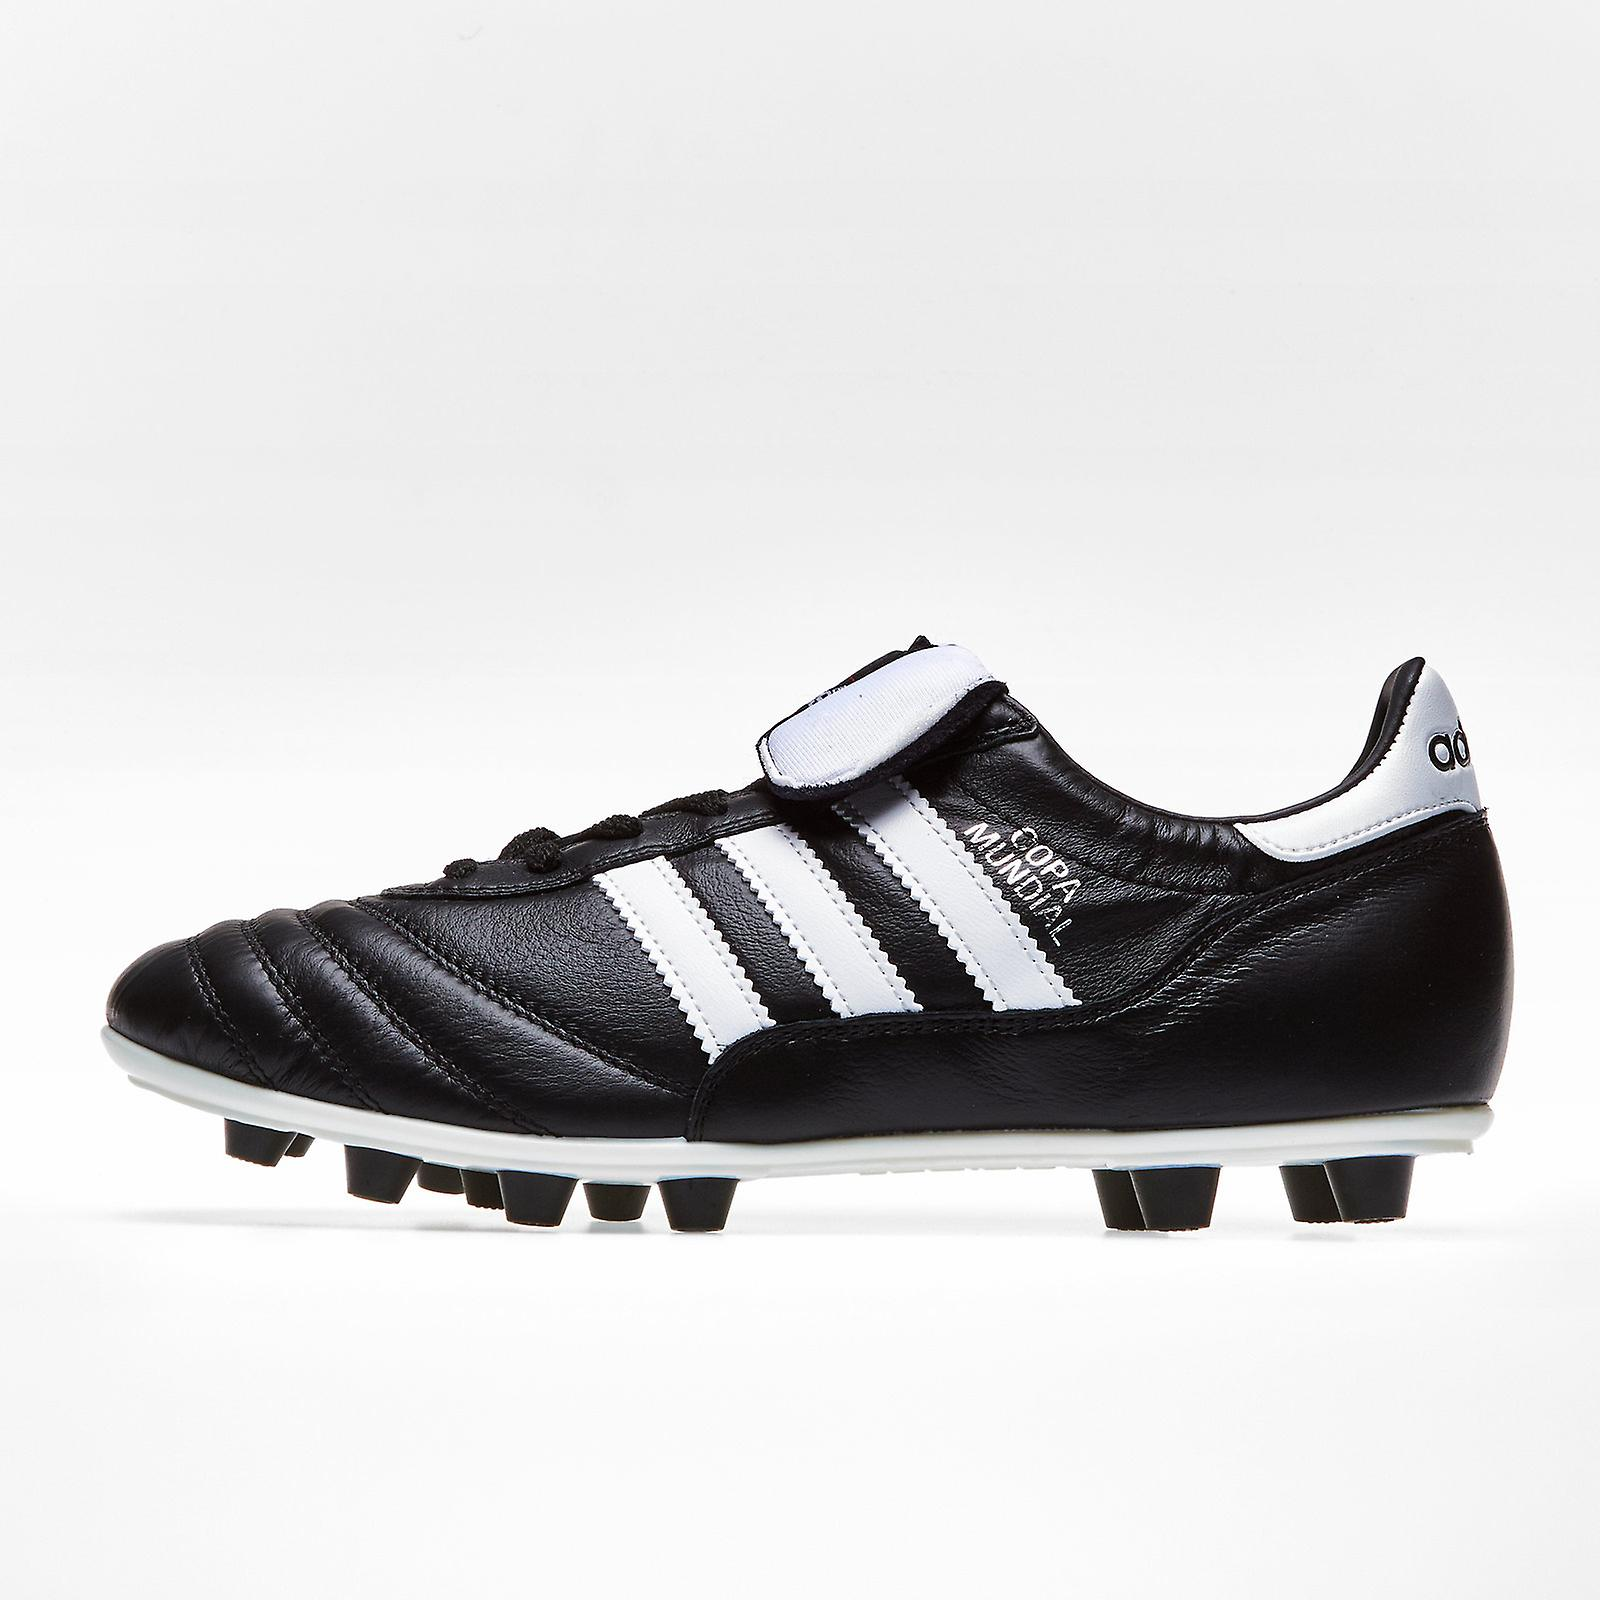 0a9e9c2d359 Buy 2 OFF ANY adidas copa mundial boots CASE AND GET 70% OFF!